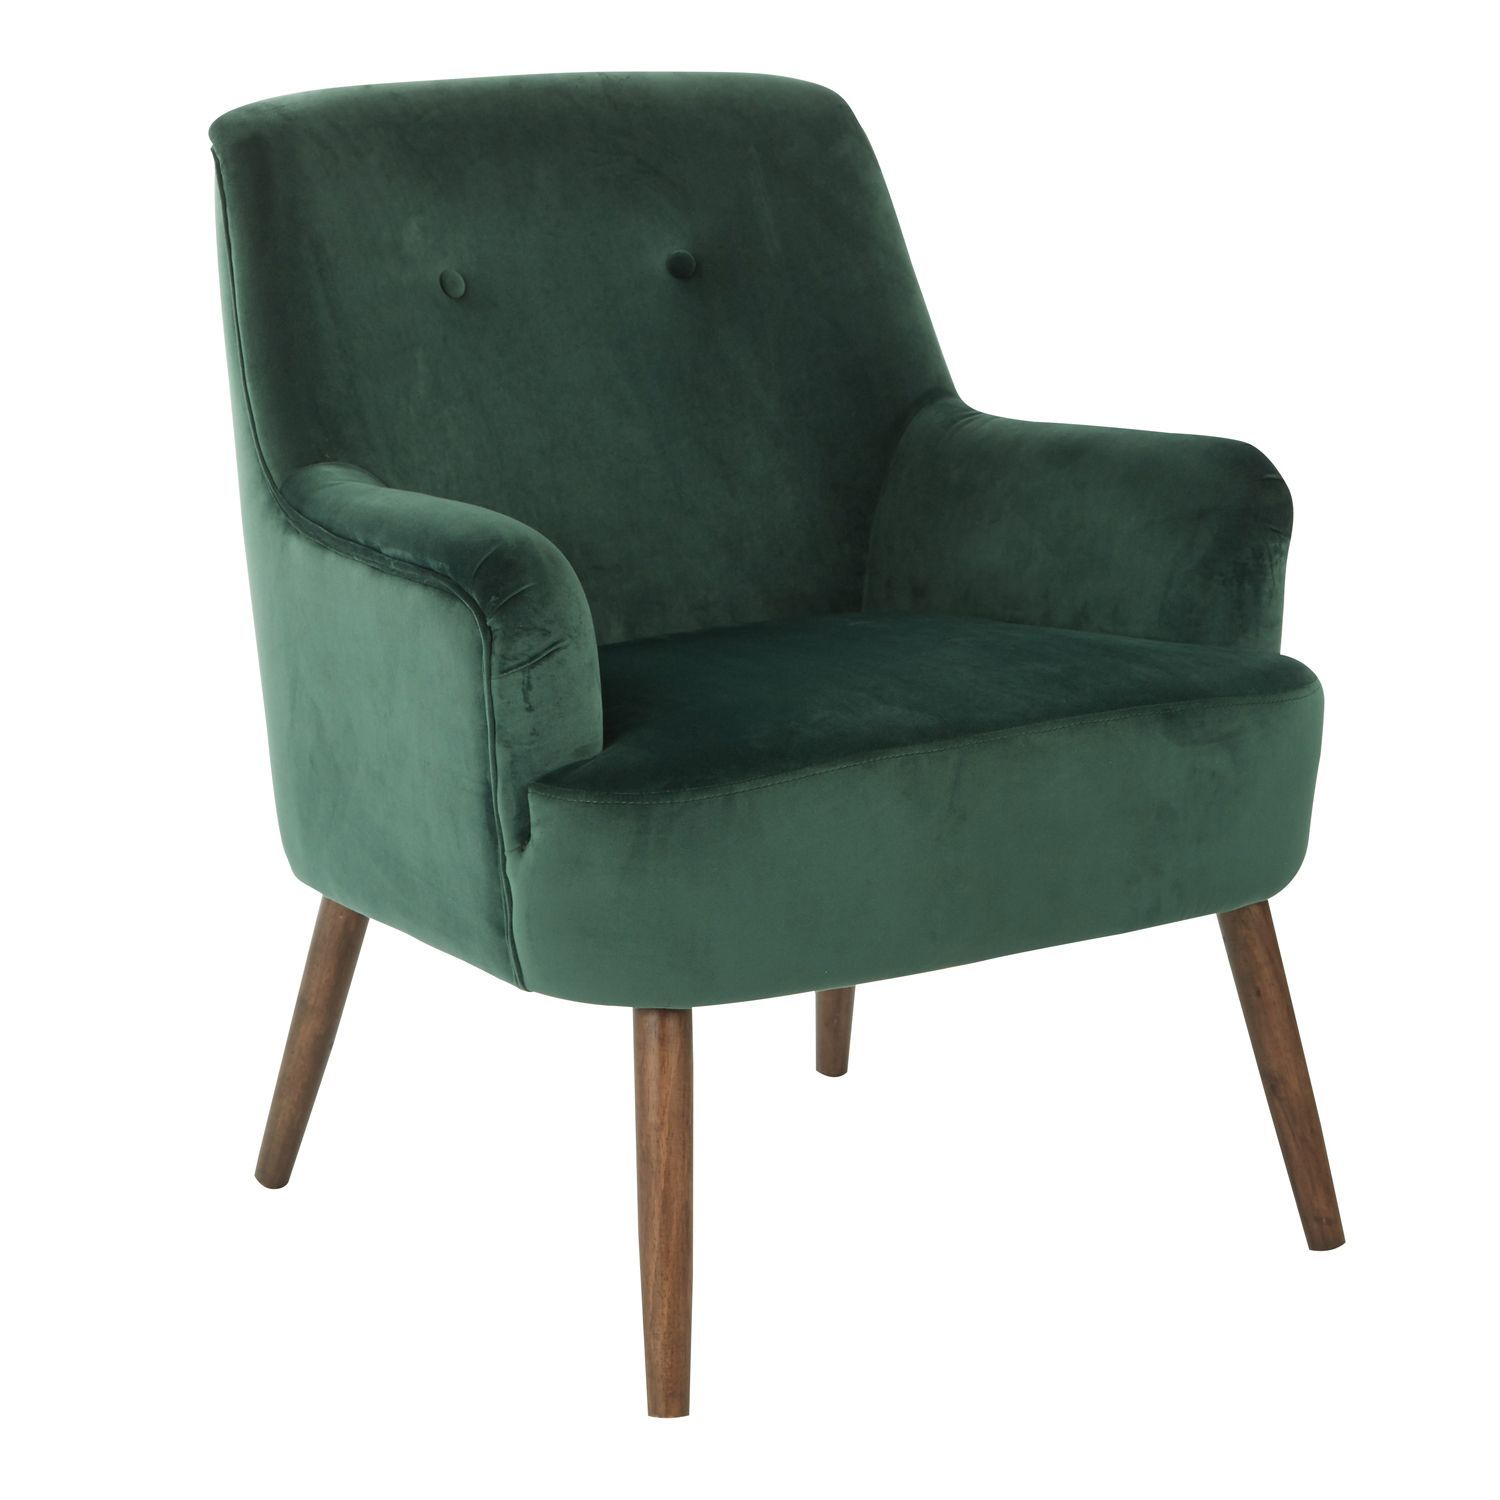 Emerald Green Accent Chair Emerald Green Chatou Chair Pier 1 Imports 222 Pacific